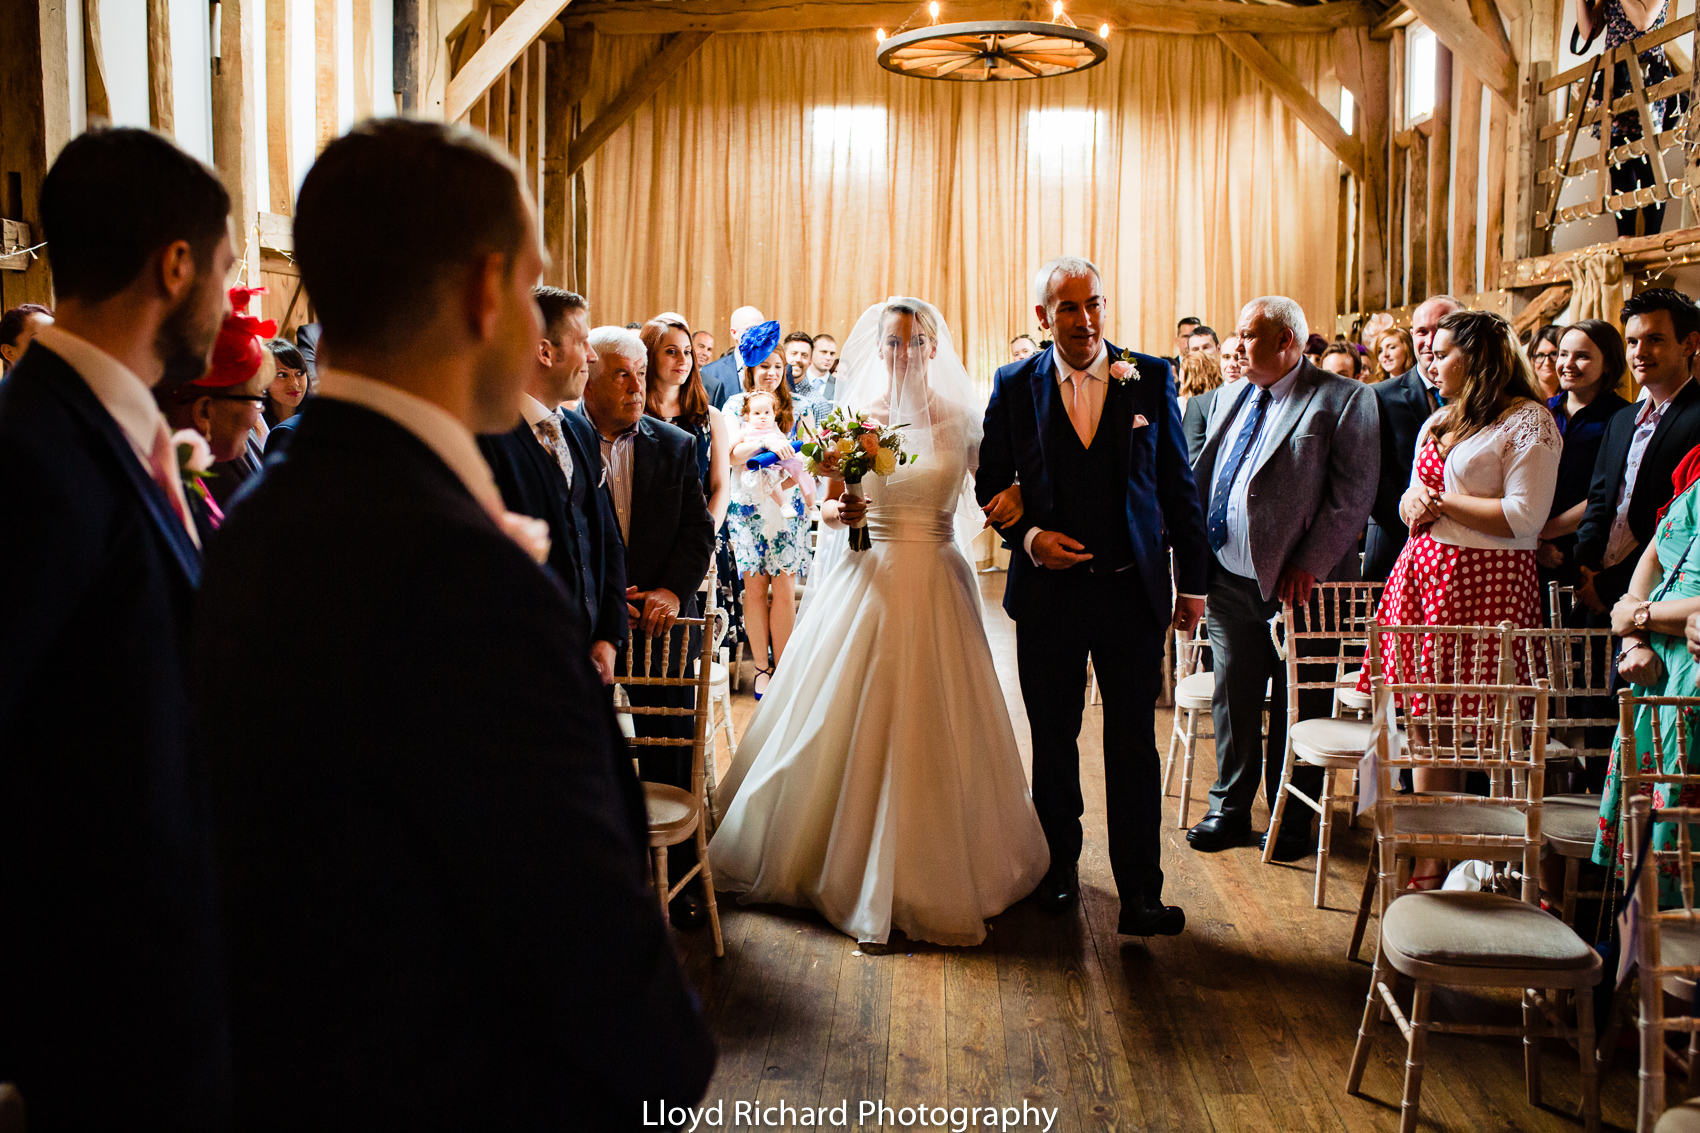 groom seeing the bride for the first time at Pitt Hall Barn